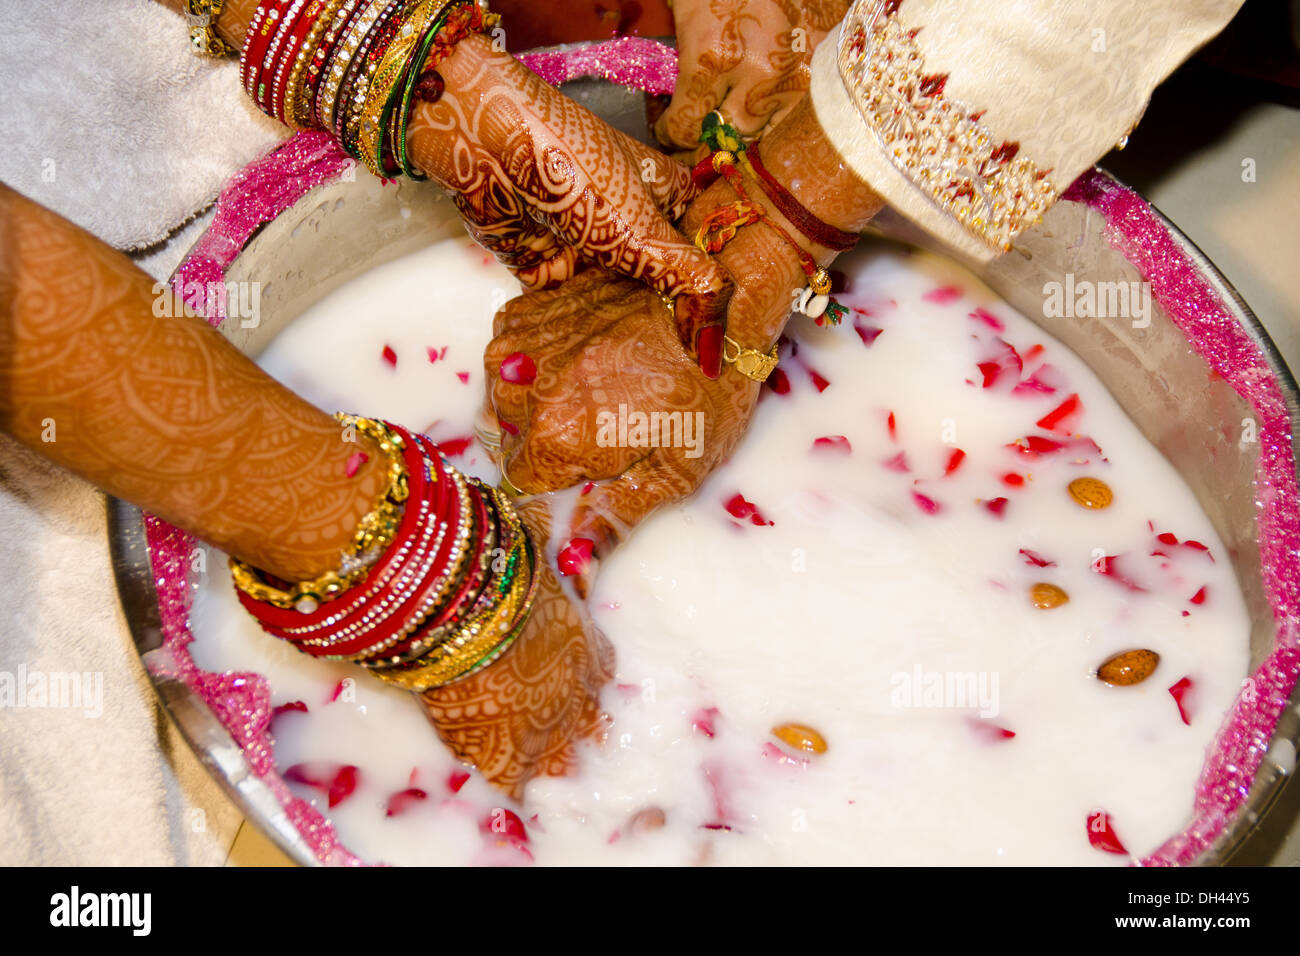 Indian Wedding Ceremony Bride And Groom Searching For Ring In Pot Full Of Milk Rose Petals Rajasthan India